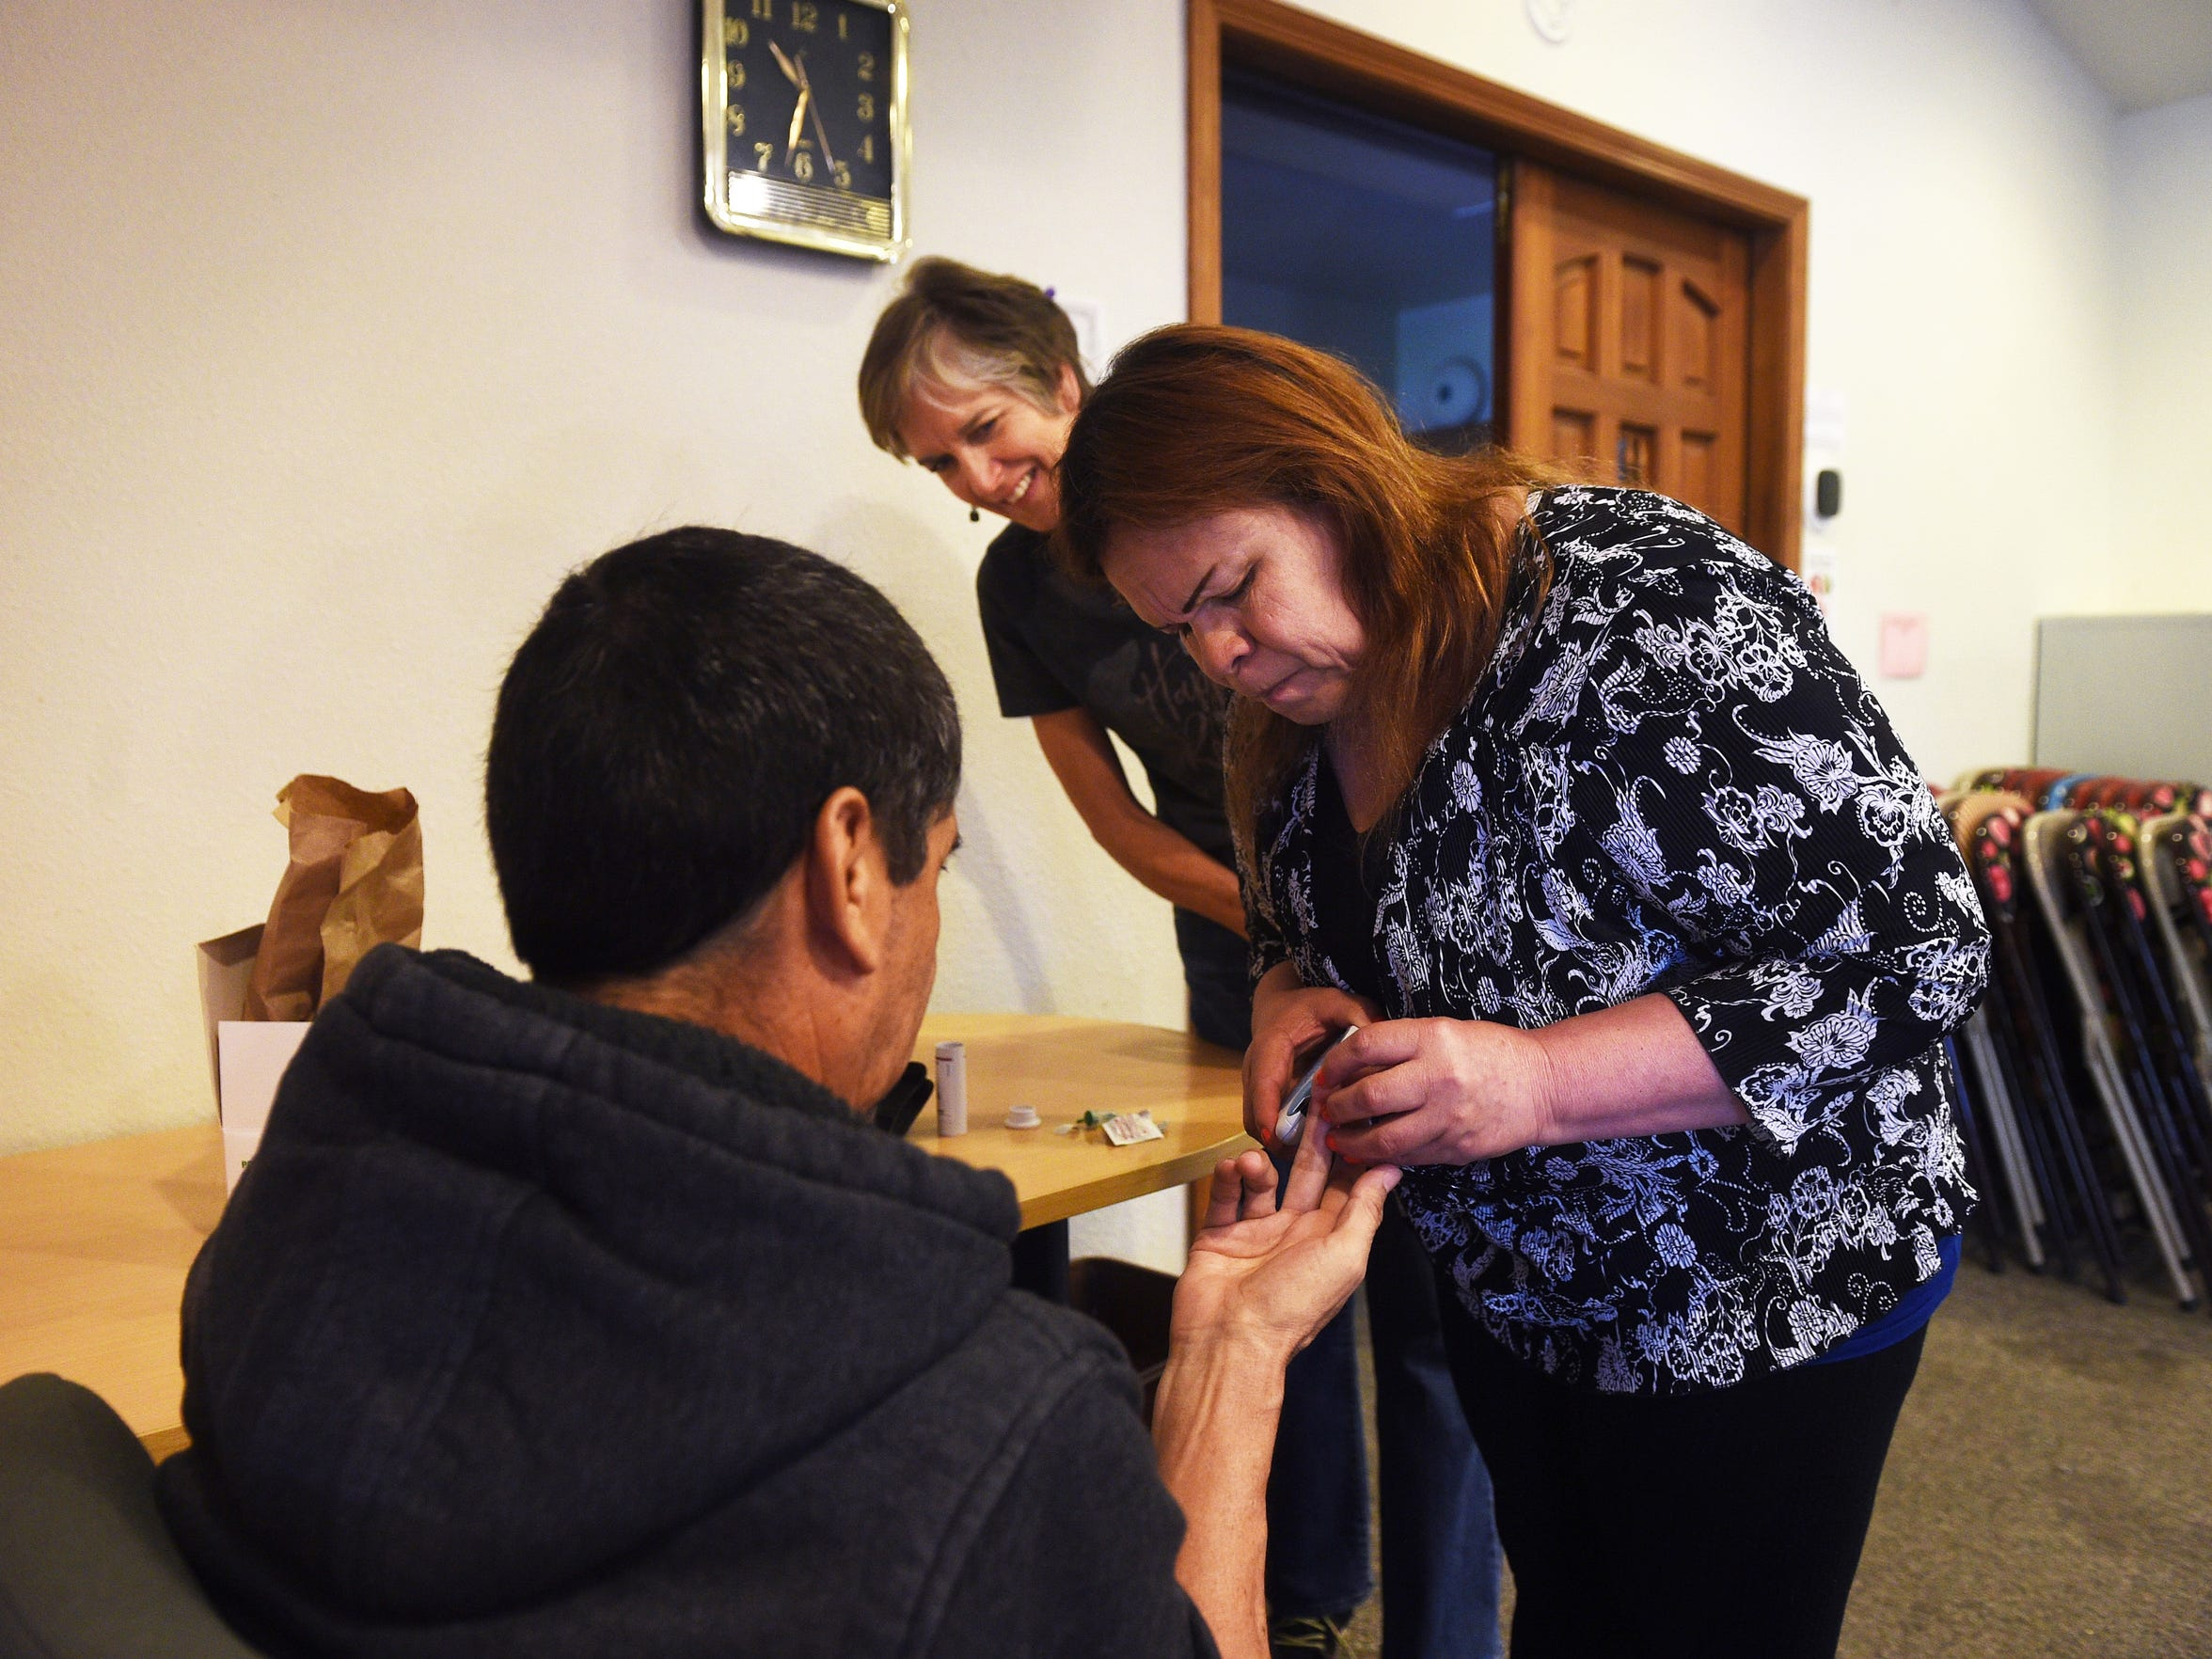 David Chavez-Macias, left, gets his blood drawn by his wife Leticia Guillen while under the watchful eye of Nurse Practitioner Brooke Walker at the Unitarian Universalist Fellowship of Northern Nevada in Reno on May 16, 2017. Chavez-Macias has been granted sanctuary by the church after being issued deportation orders by U.S. Immigration and Customs Enforcement, or ICE.